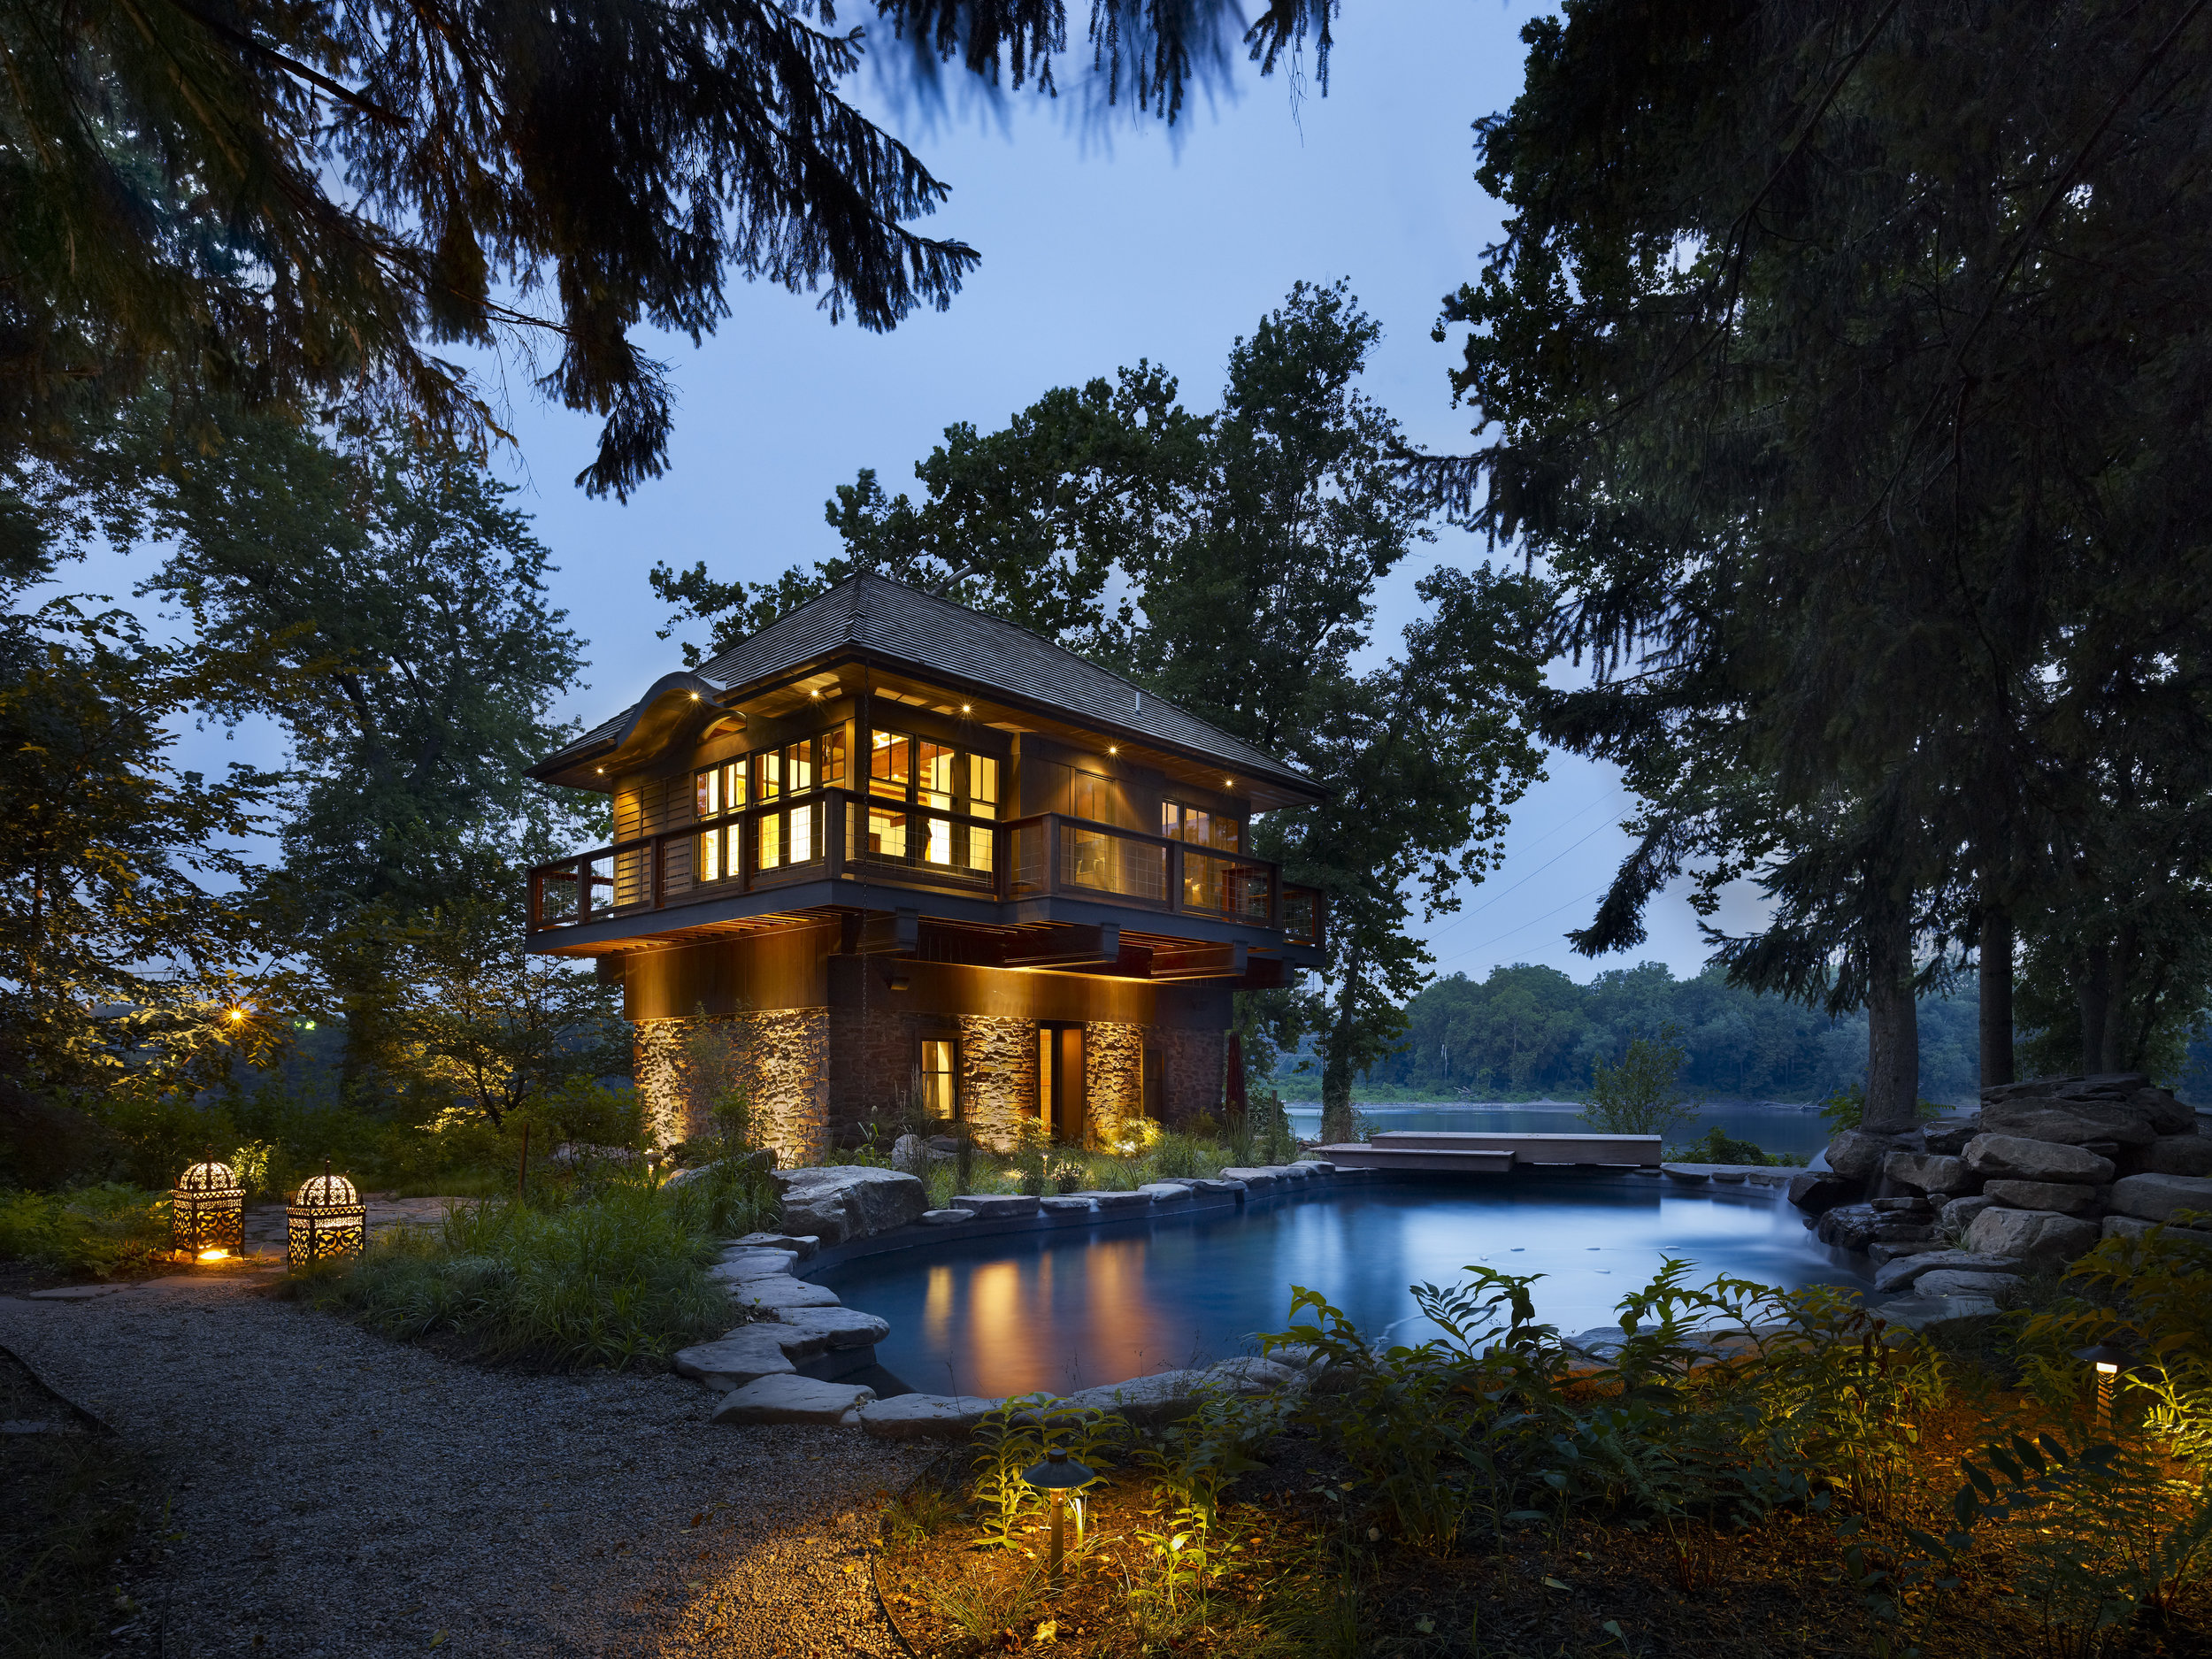 River House | Bucks County Builder & Contractor | Custom Homes & Renovations